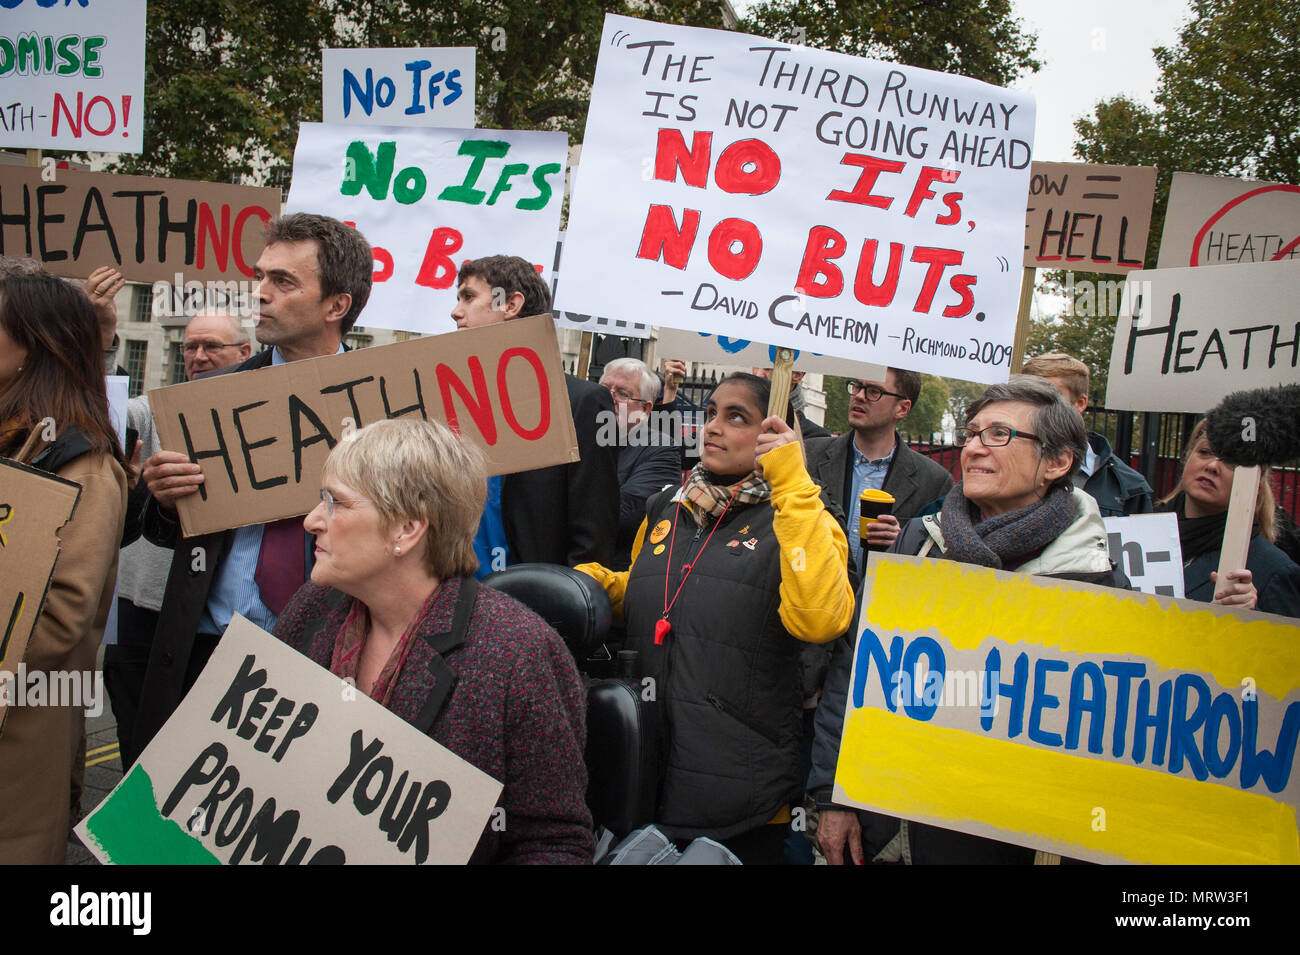 Whitehall, London, UK.25th October 2016. Vince Cable (wearing hat) joins a small anti-Heathrow protest  opposite Downing Street, London - Stock Image